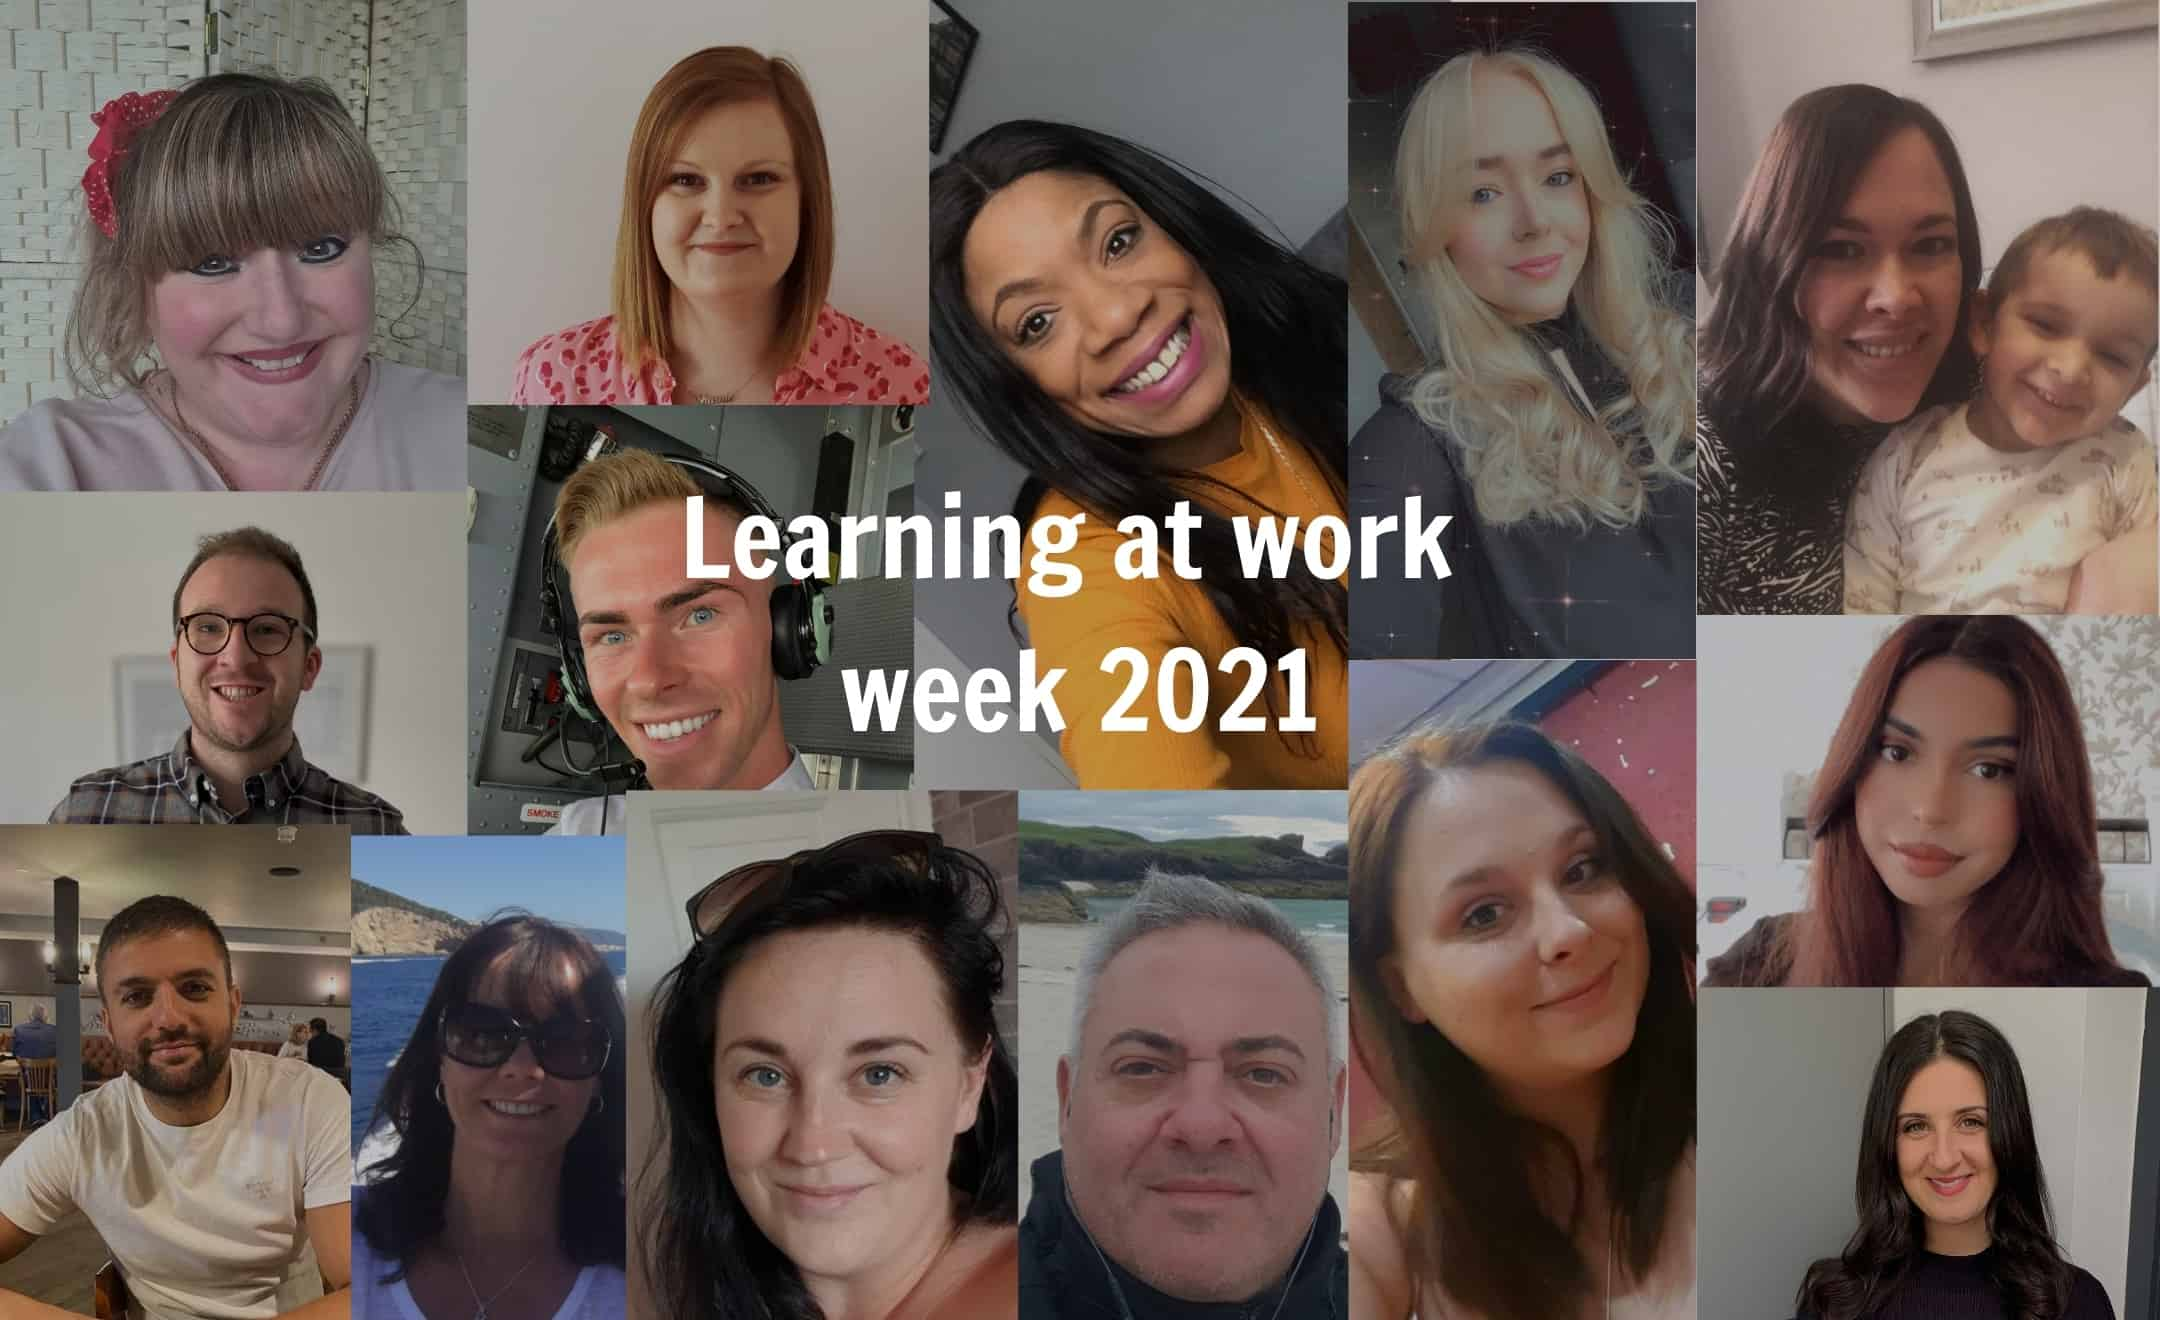 Image of Learning at work week 2021